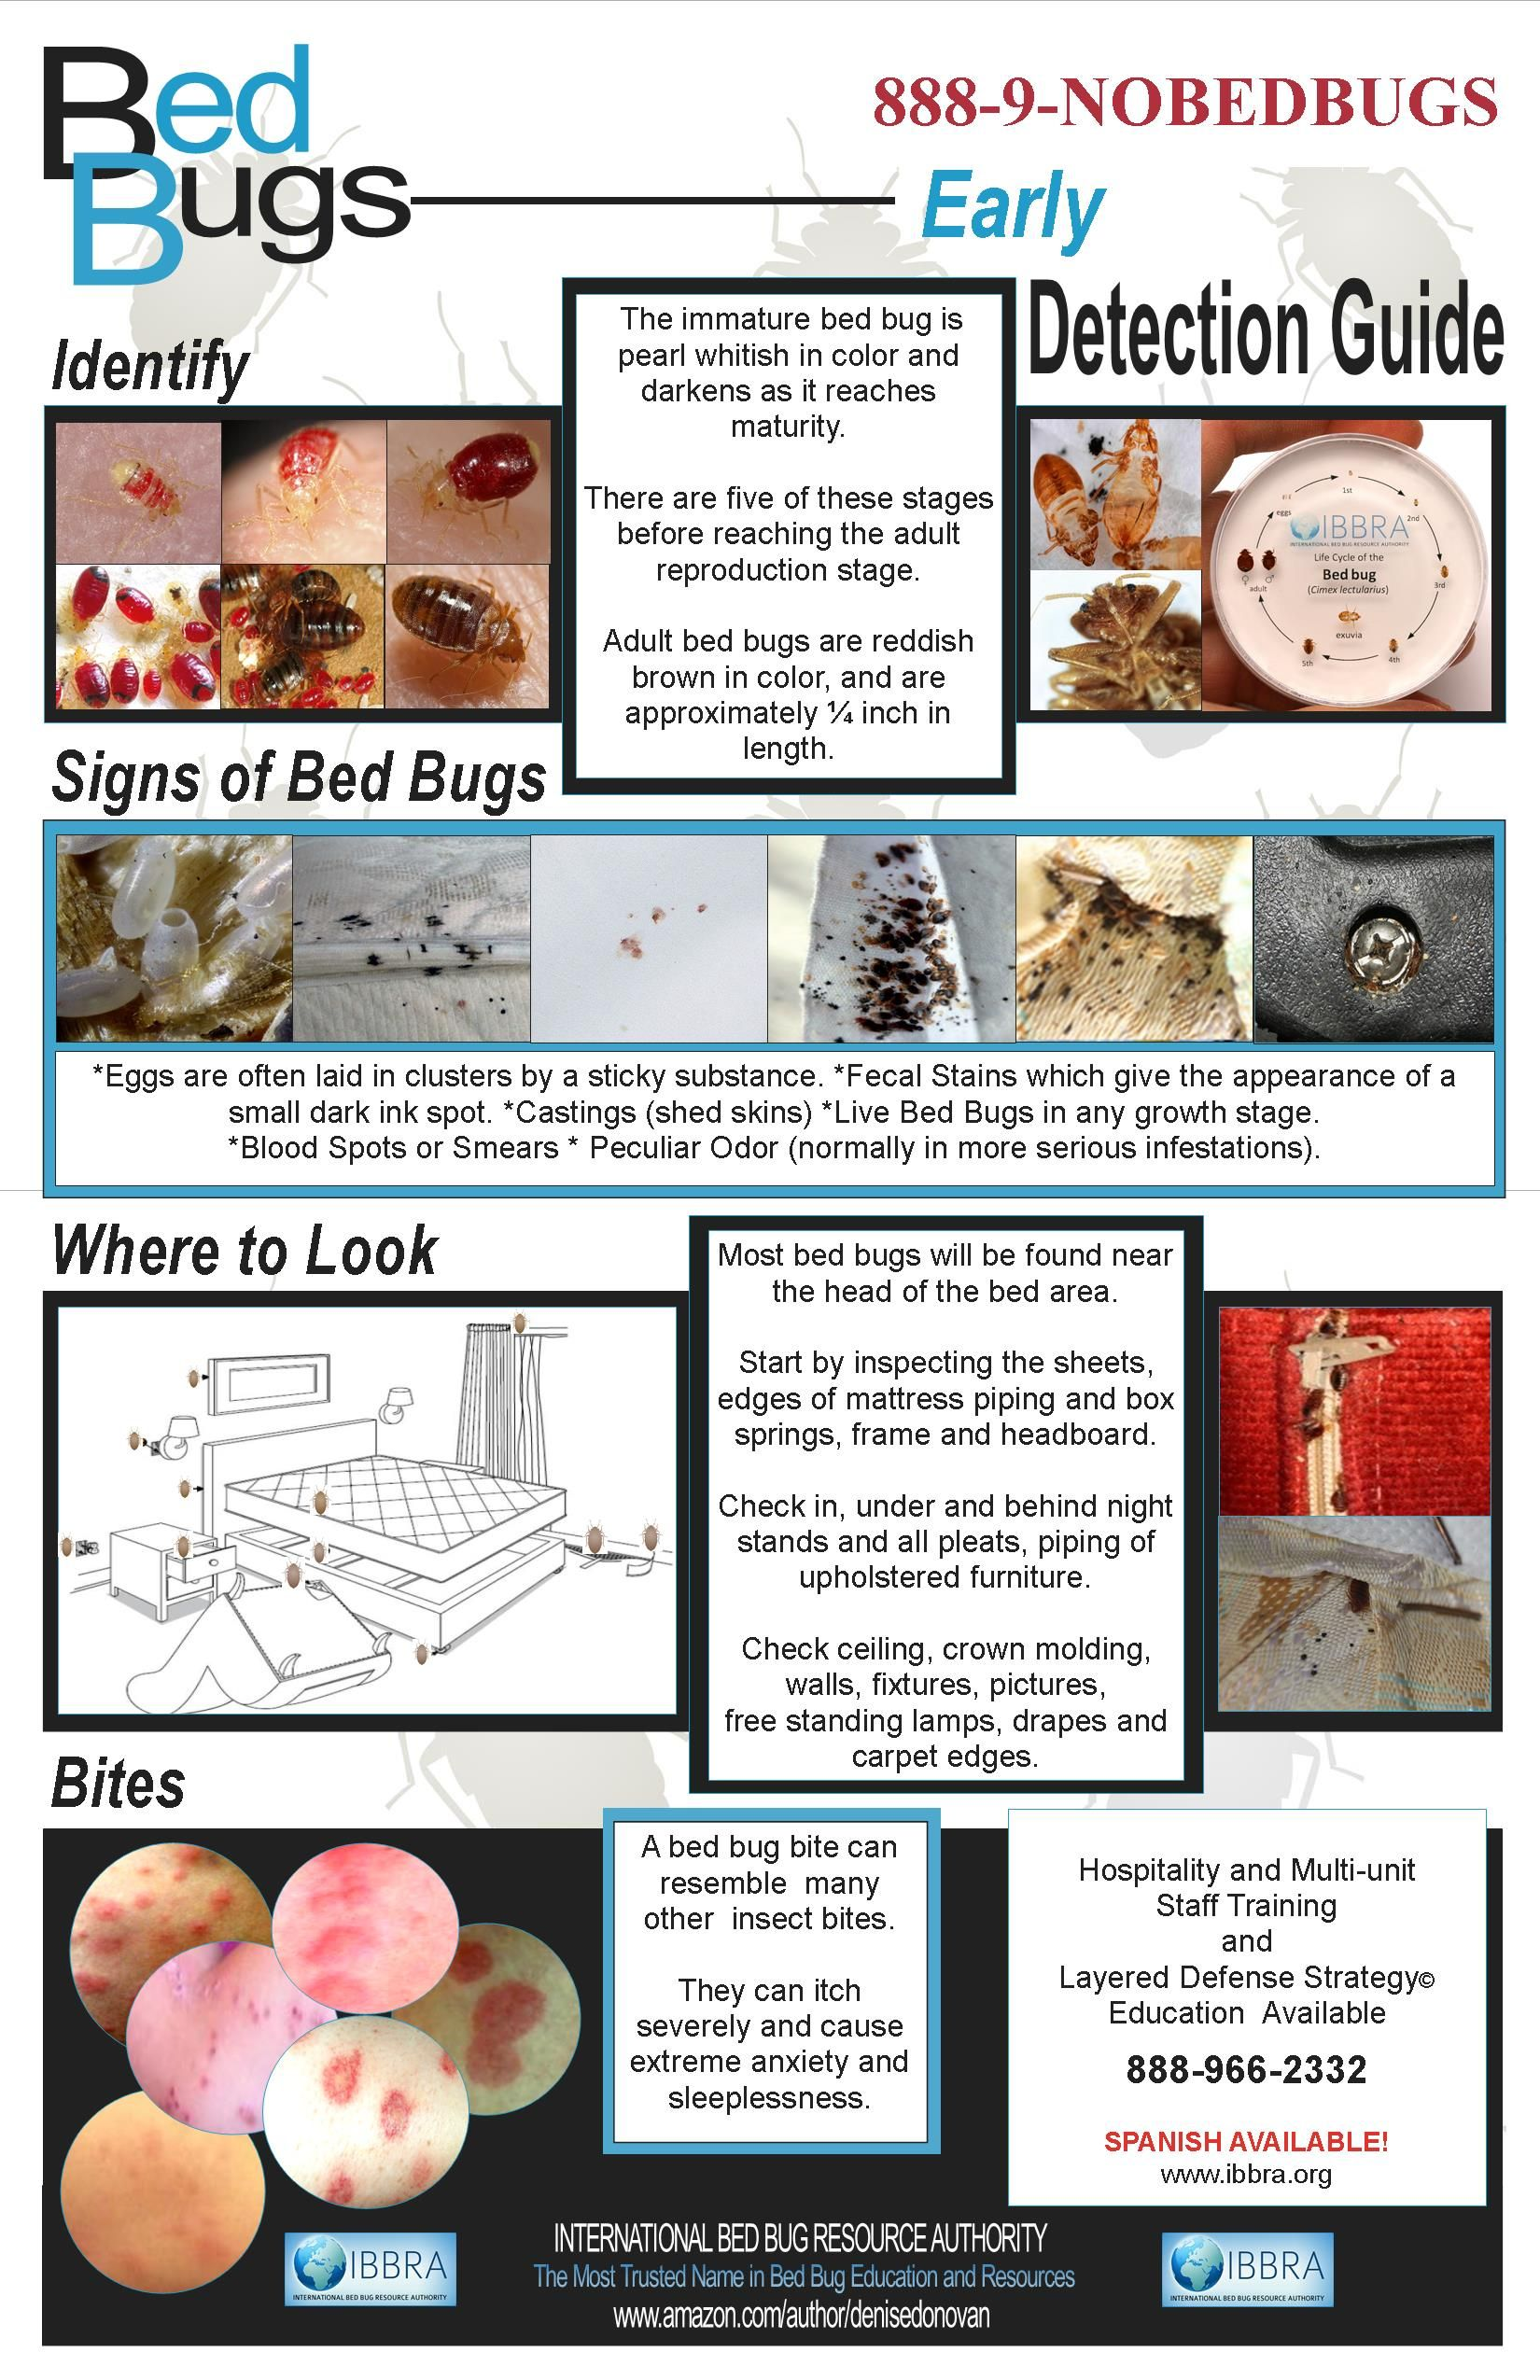 EARLY DETECTION BED BUG POSTER Bed bugs, Signs of bed